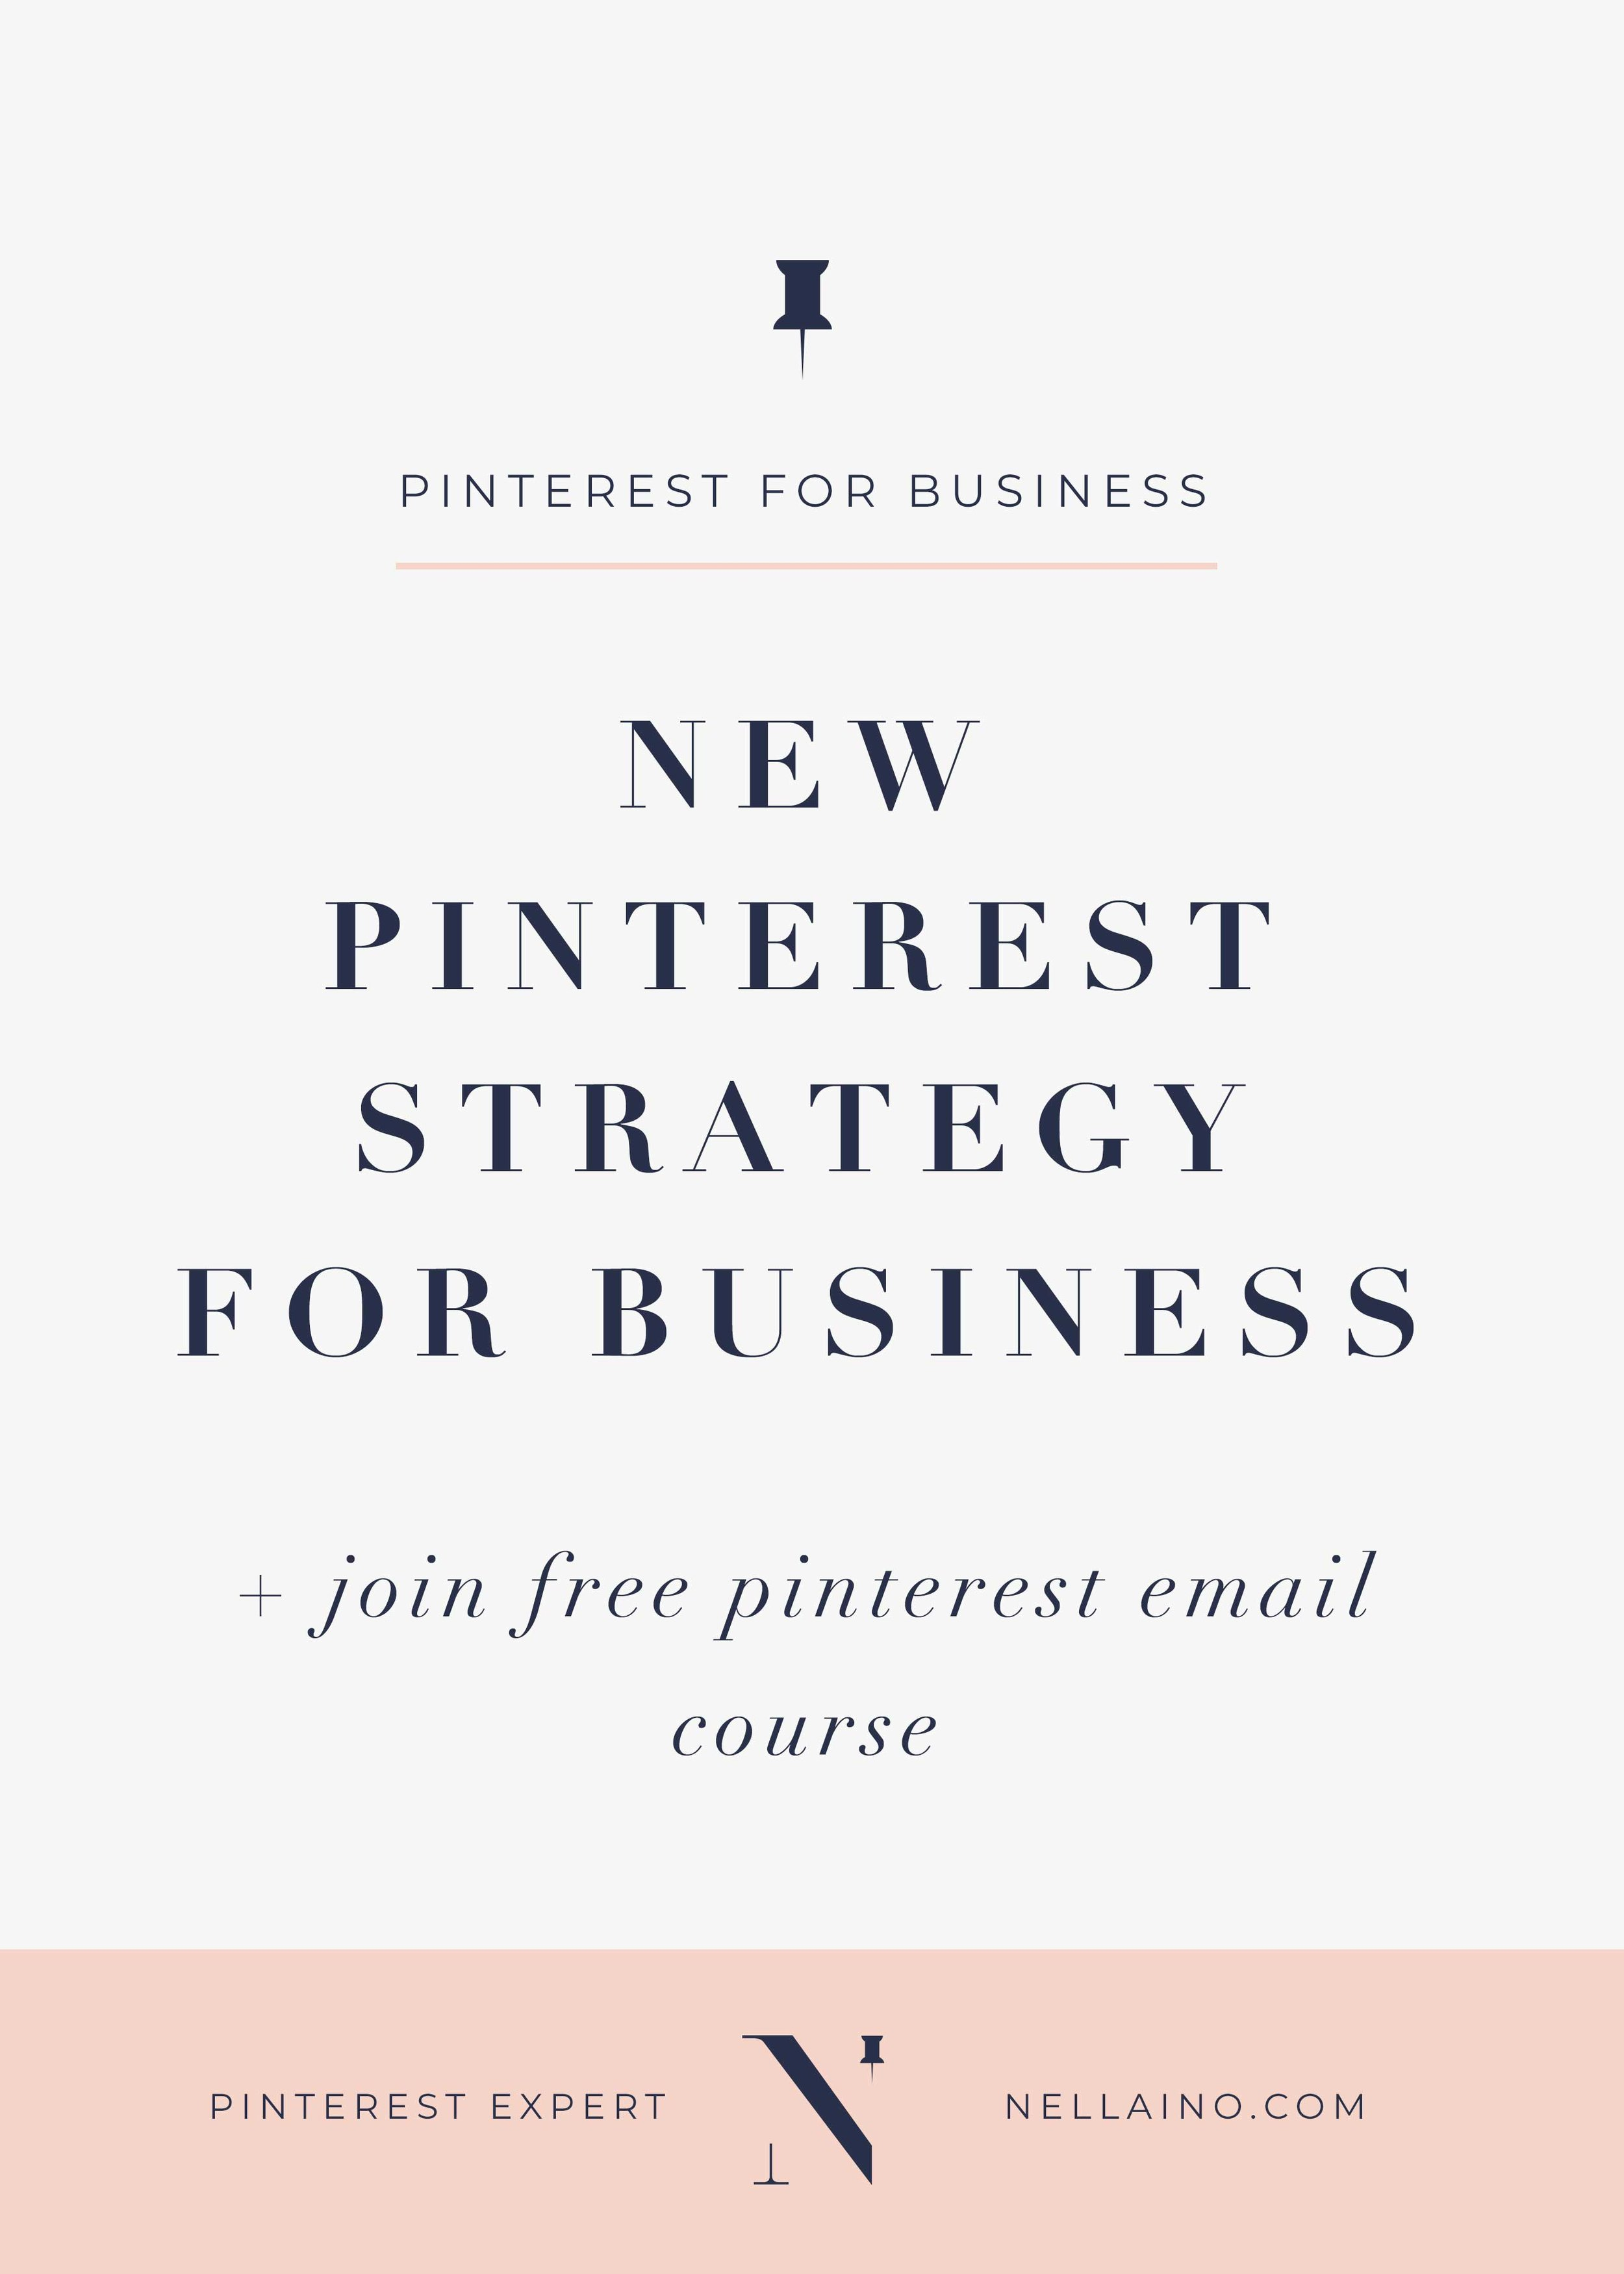 Pinterest-strategy-for-business-by-Nellaino.jpg